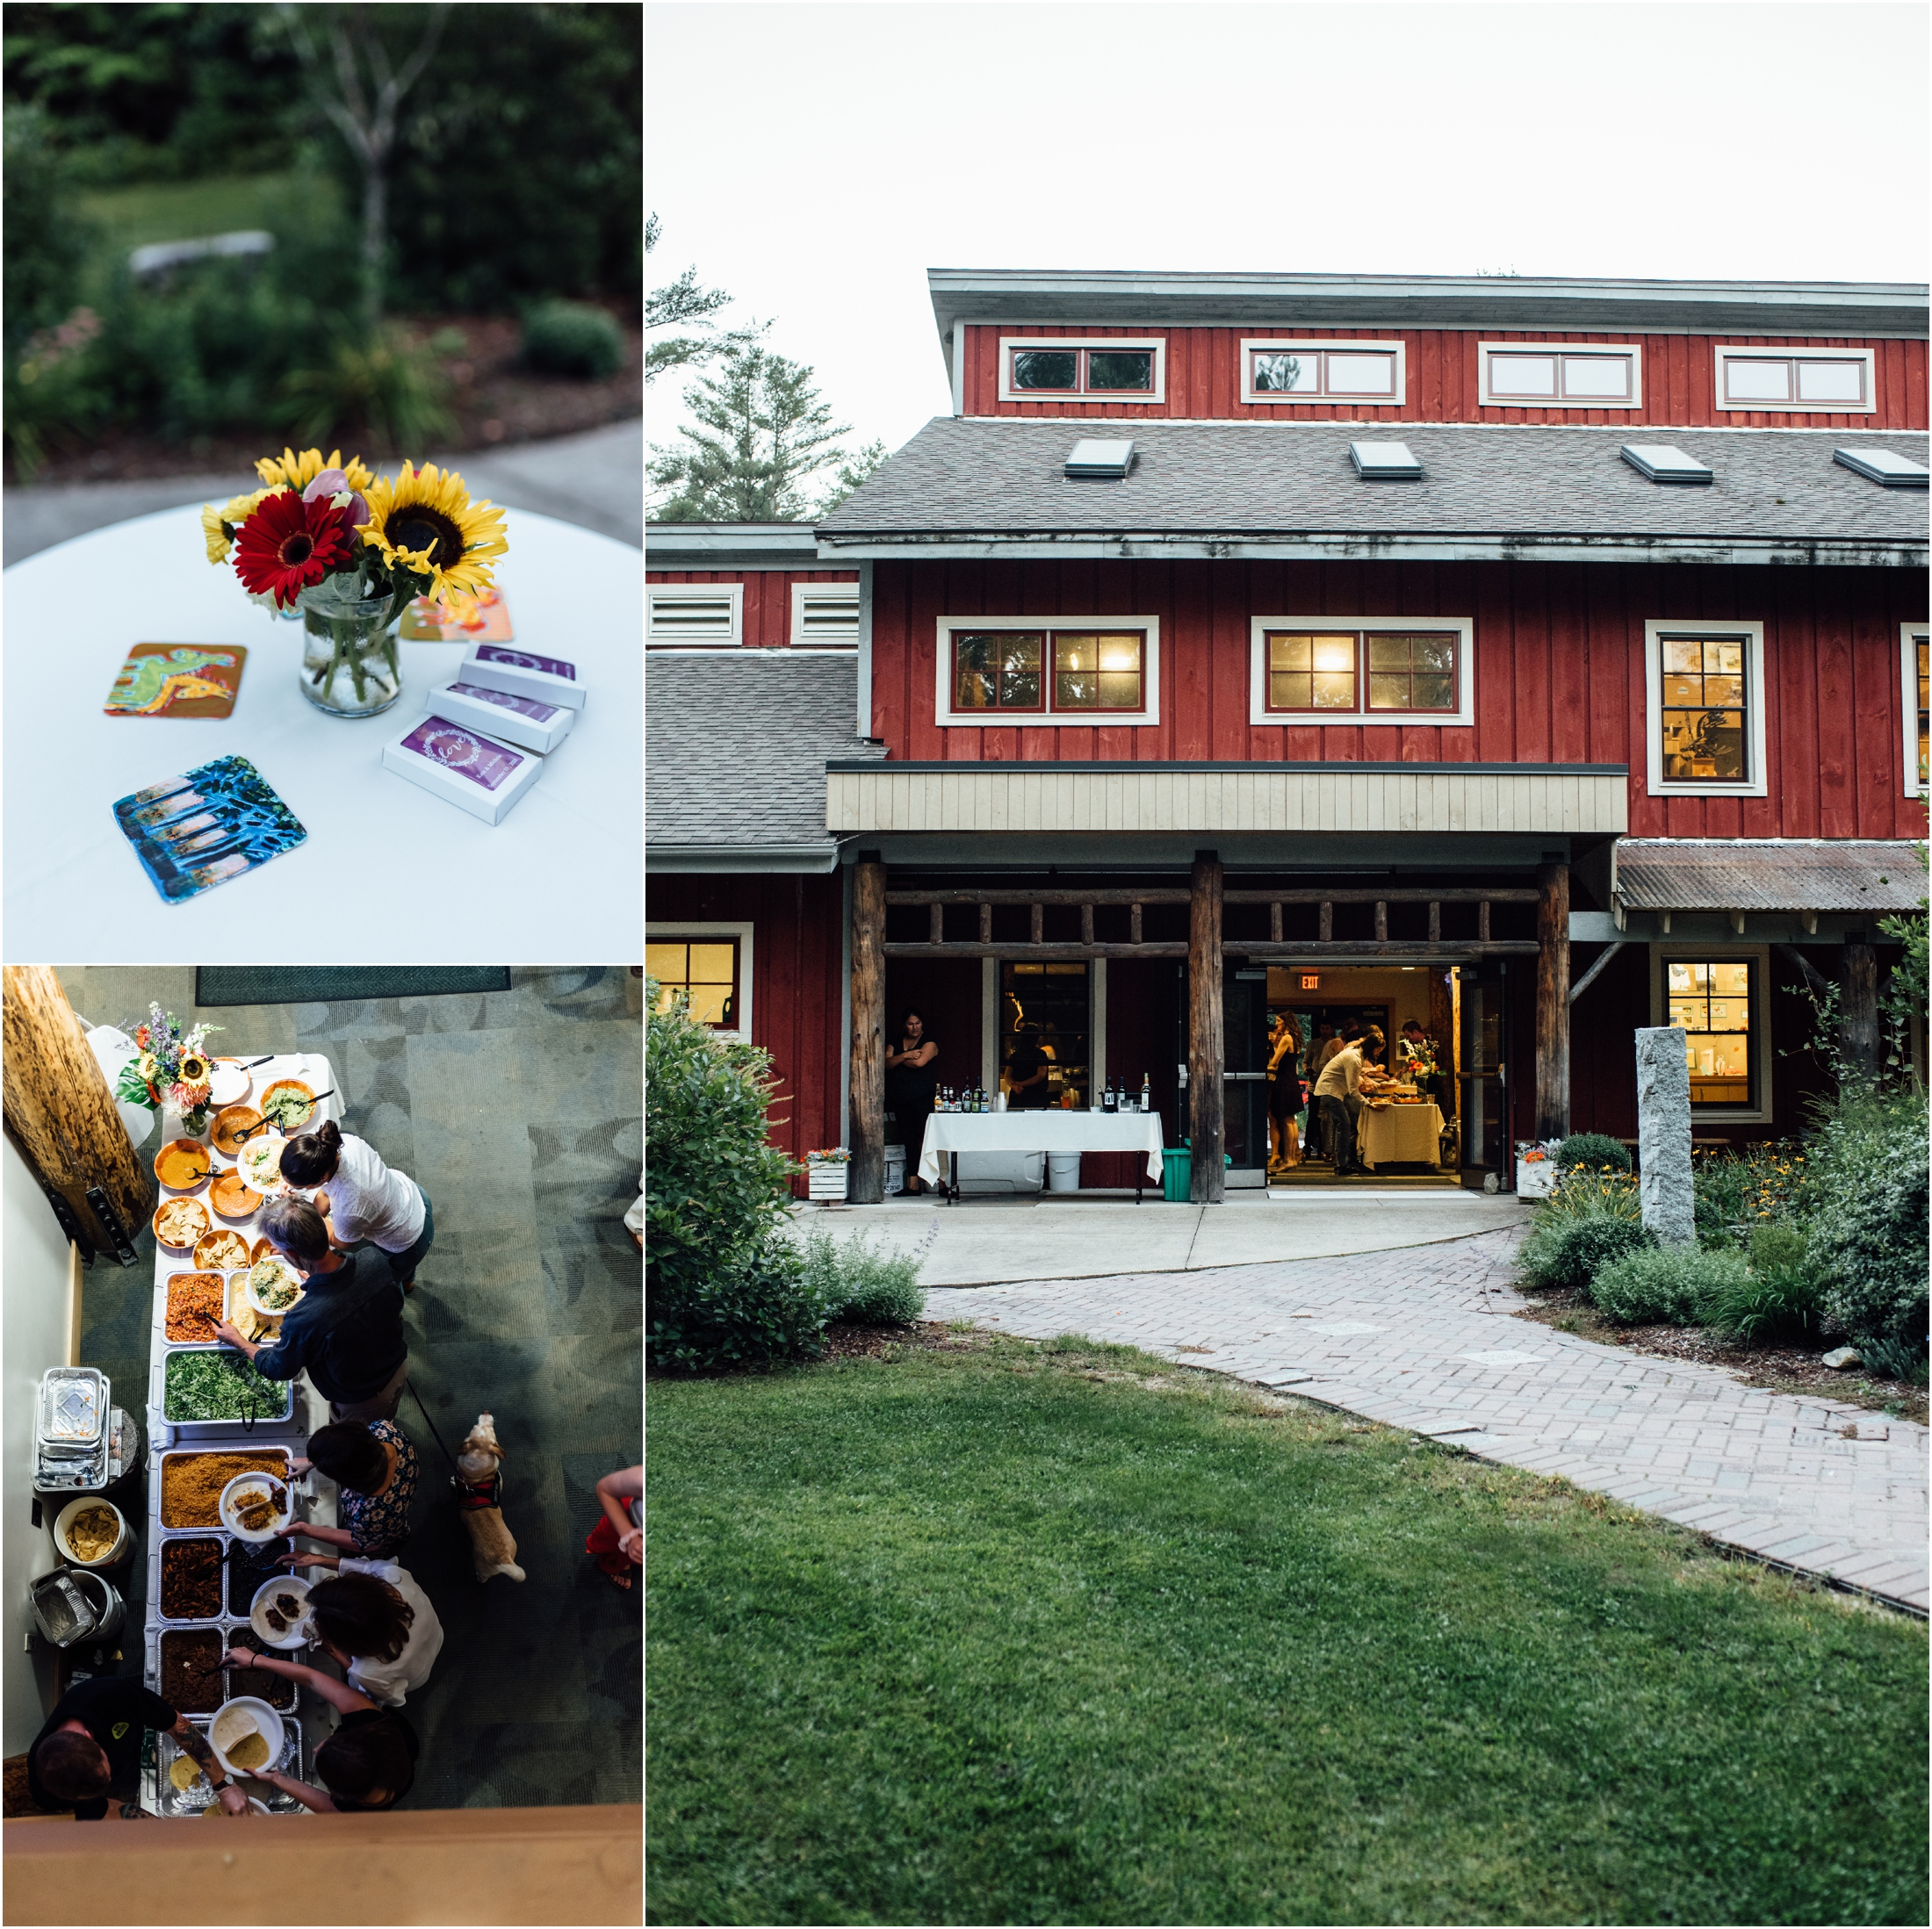 Kate_and_Michele_New_Hampshire_wedding_the_photo_farm_0563.jpg